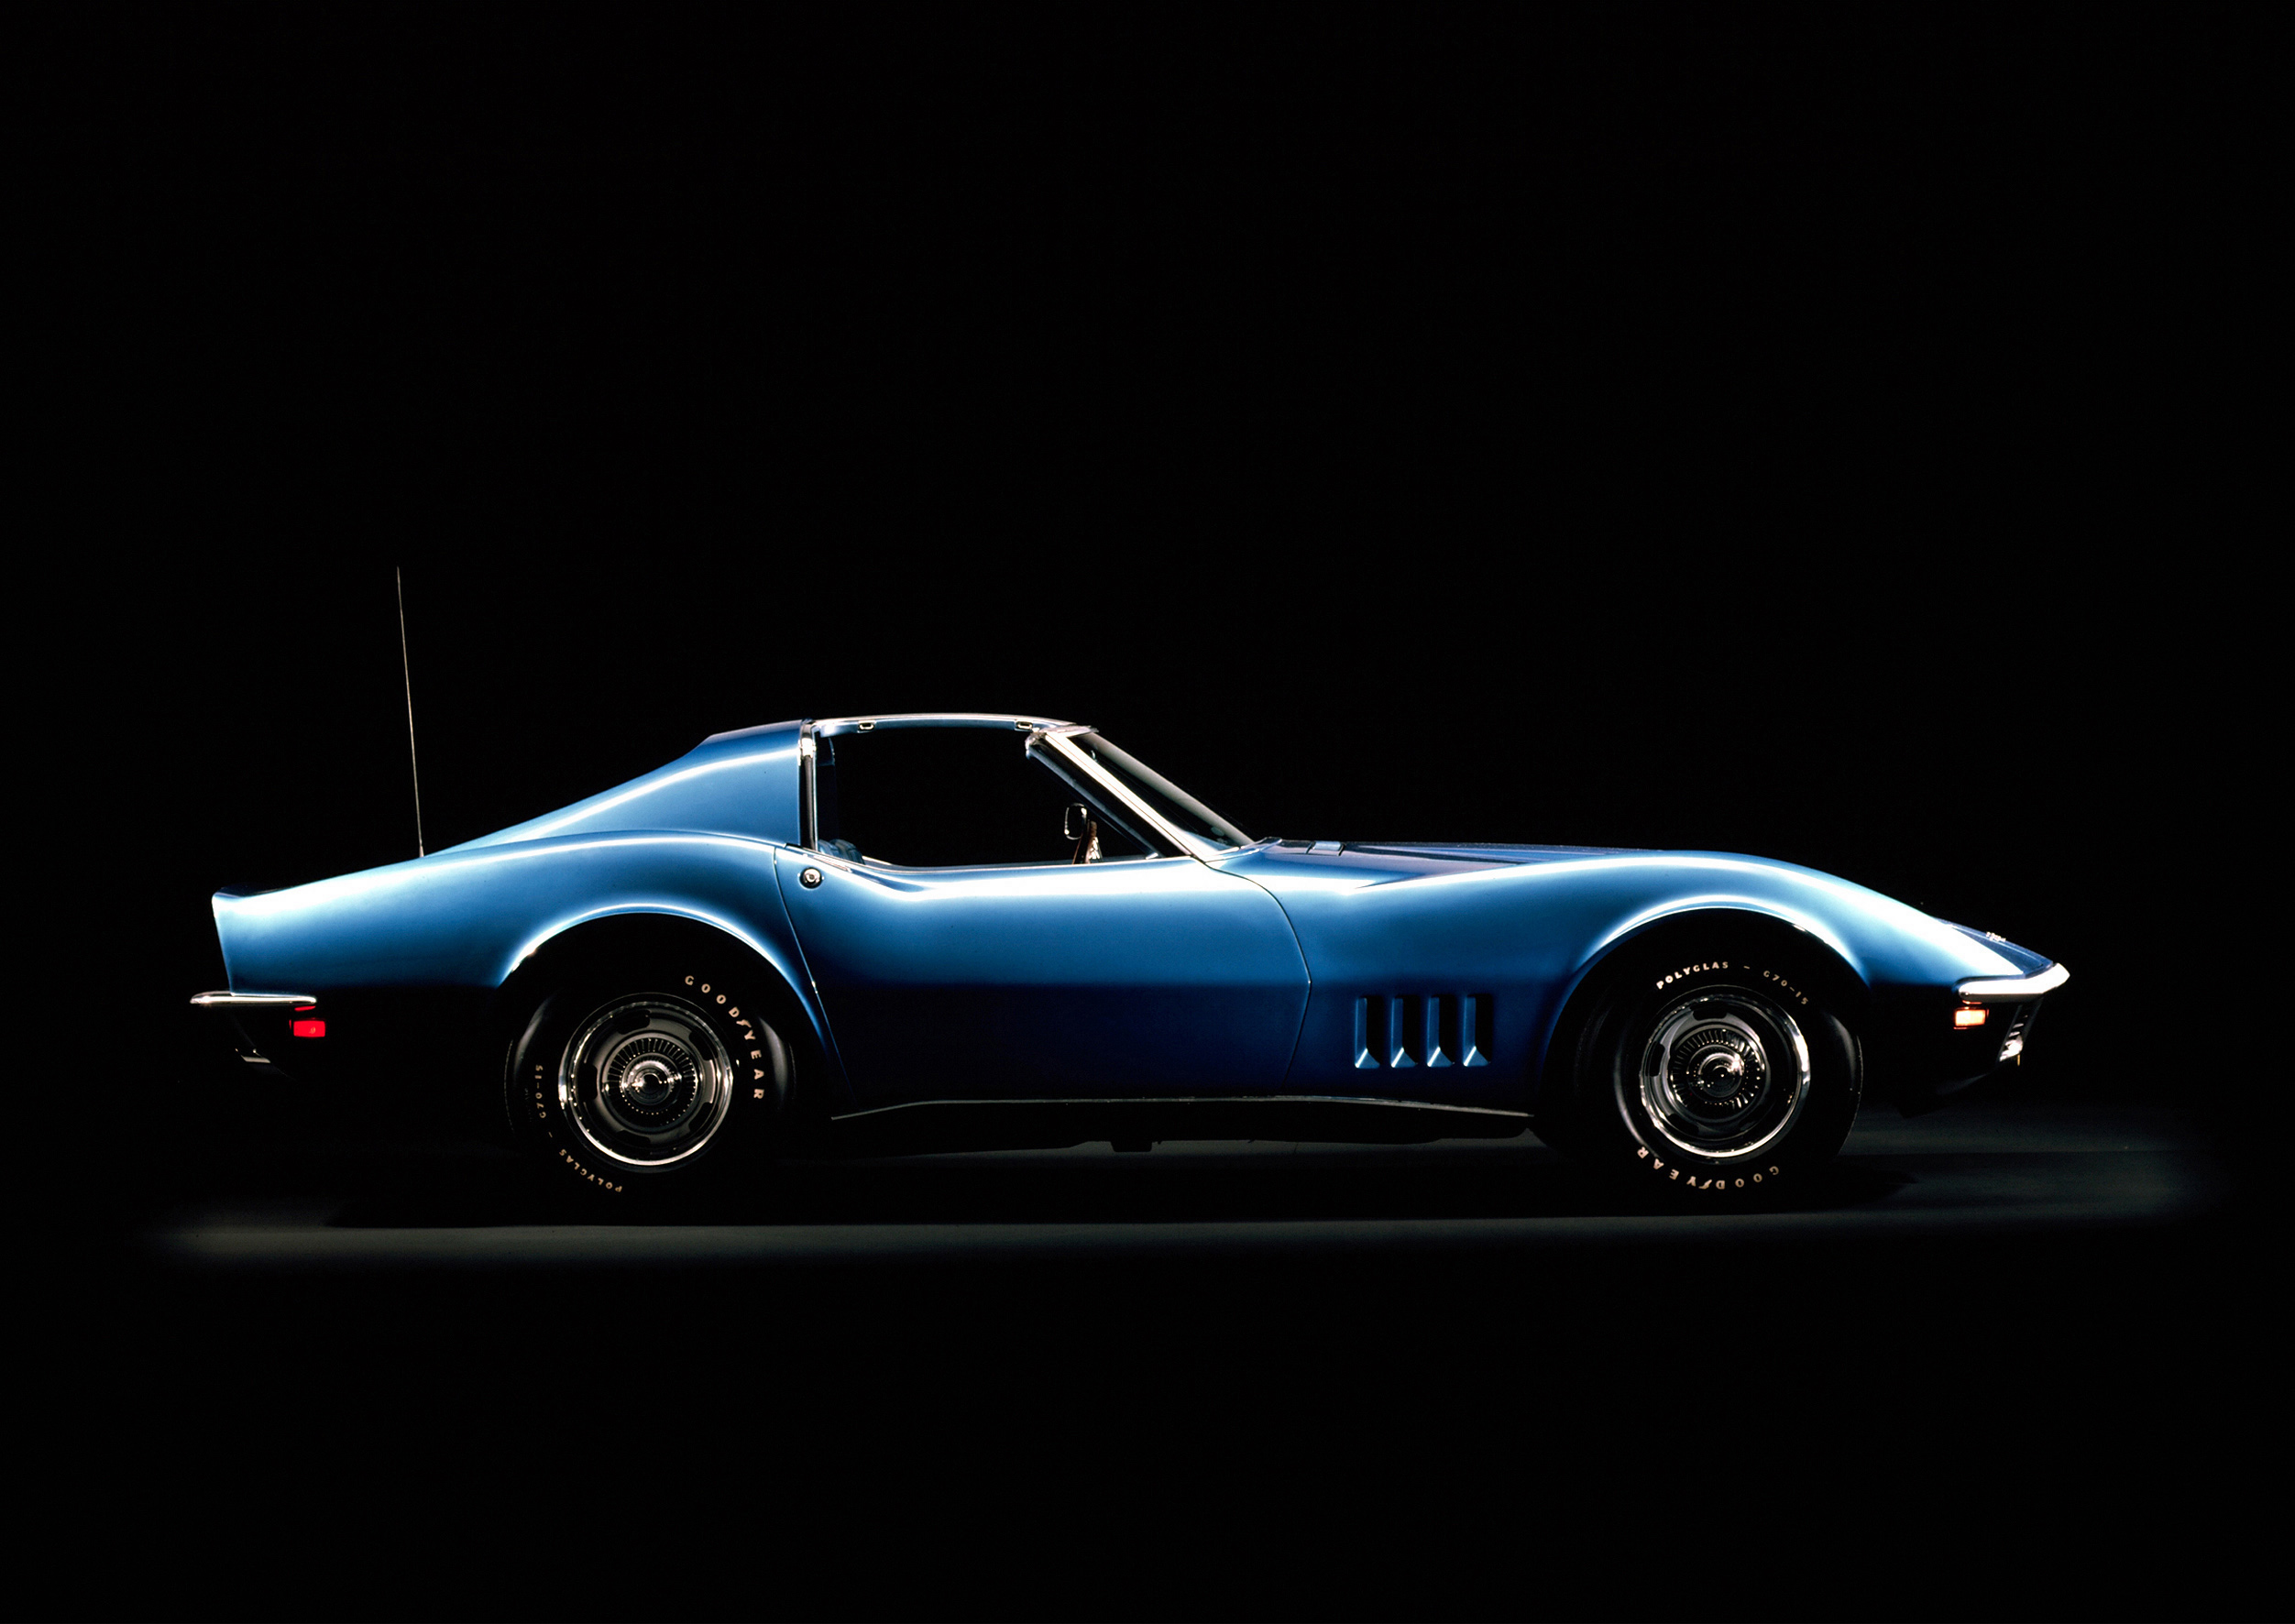 1968 Chevrolet Stingray Corvette